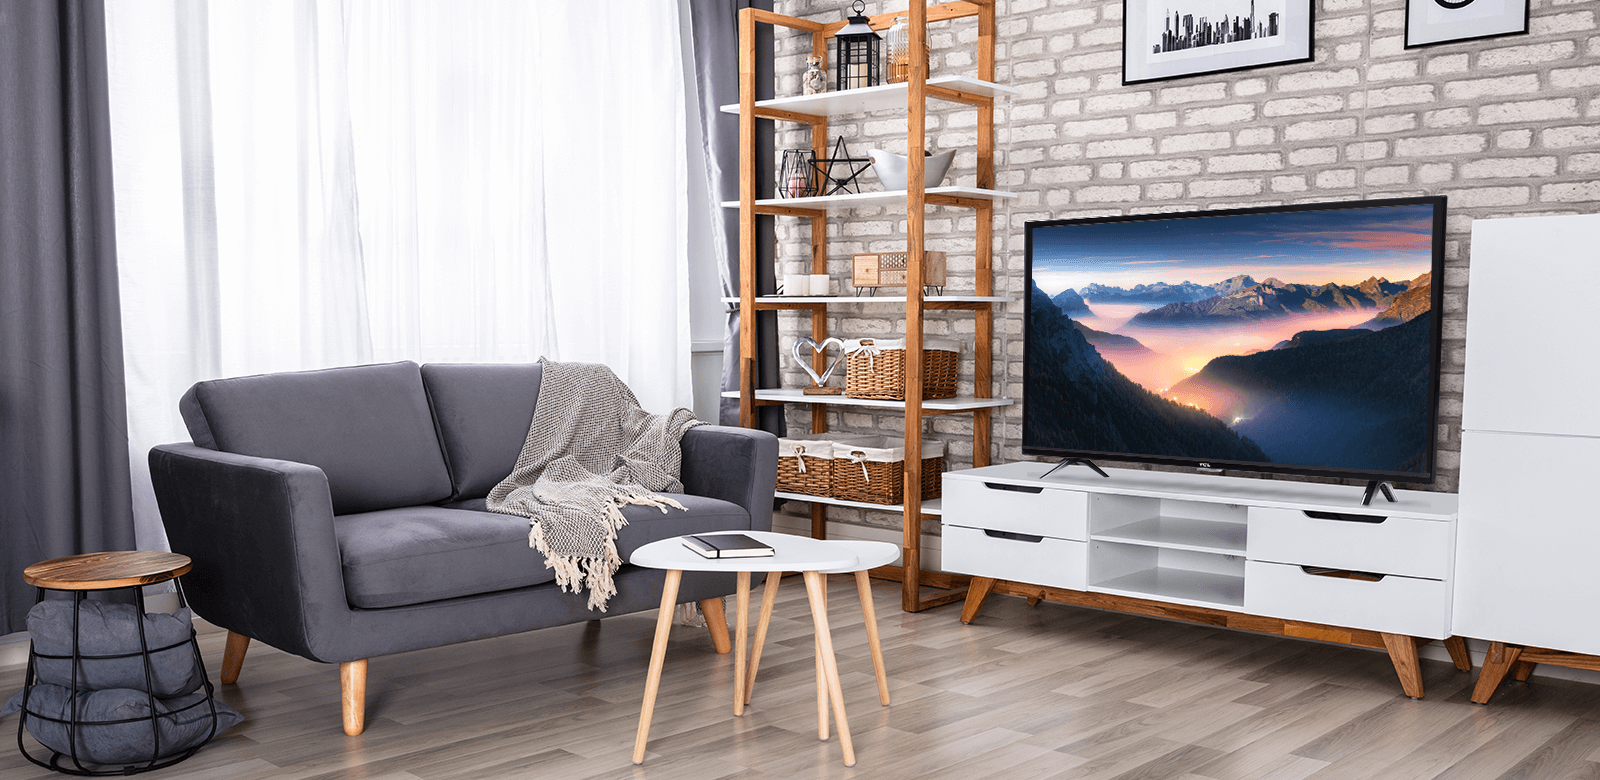 TCL 3-Series lifestyle